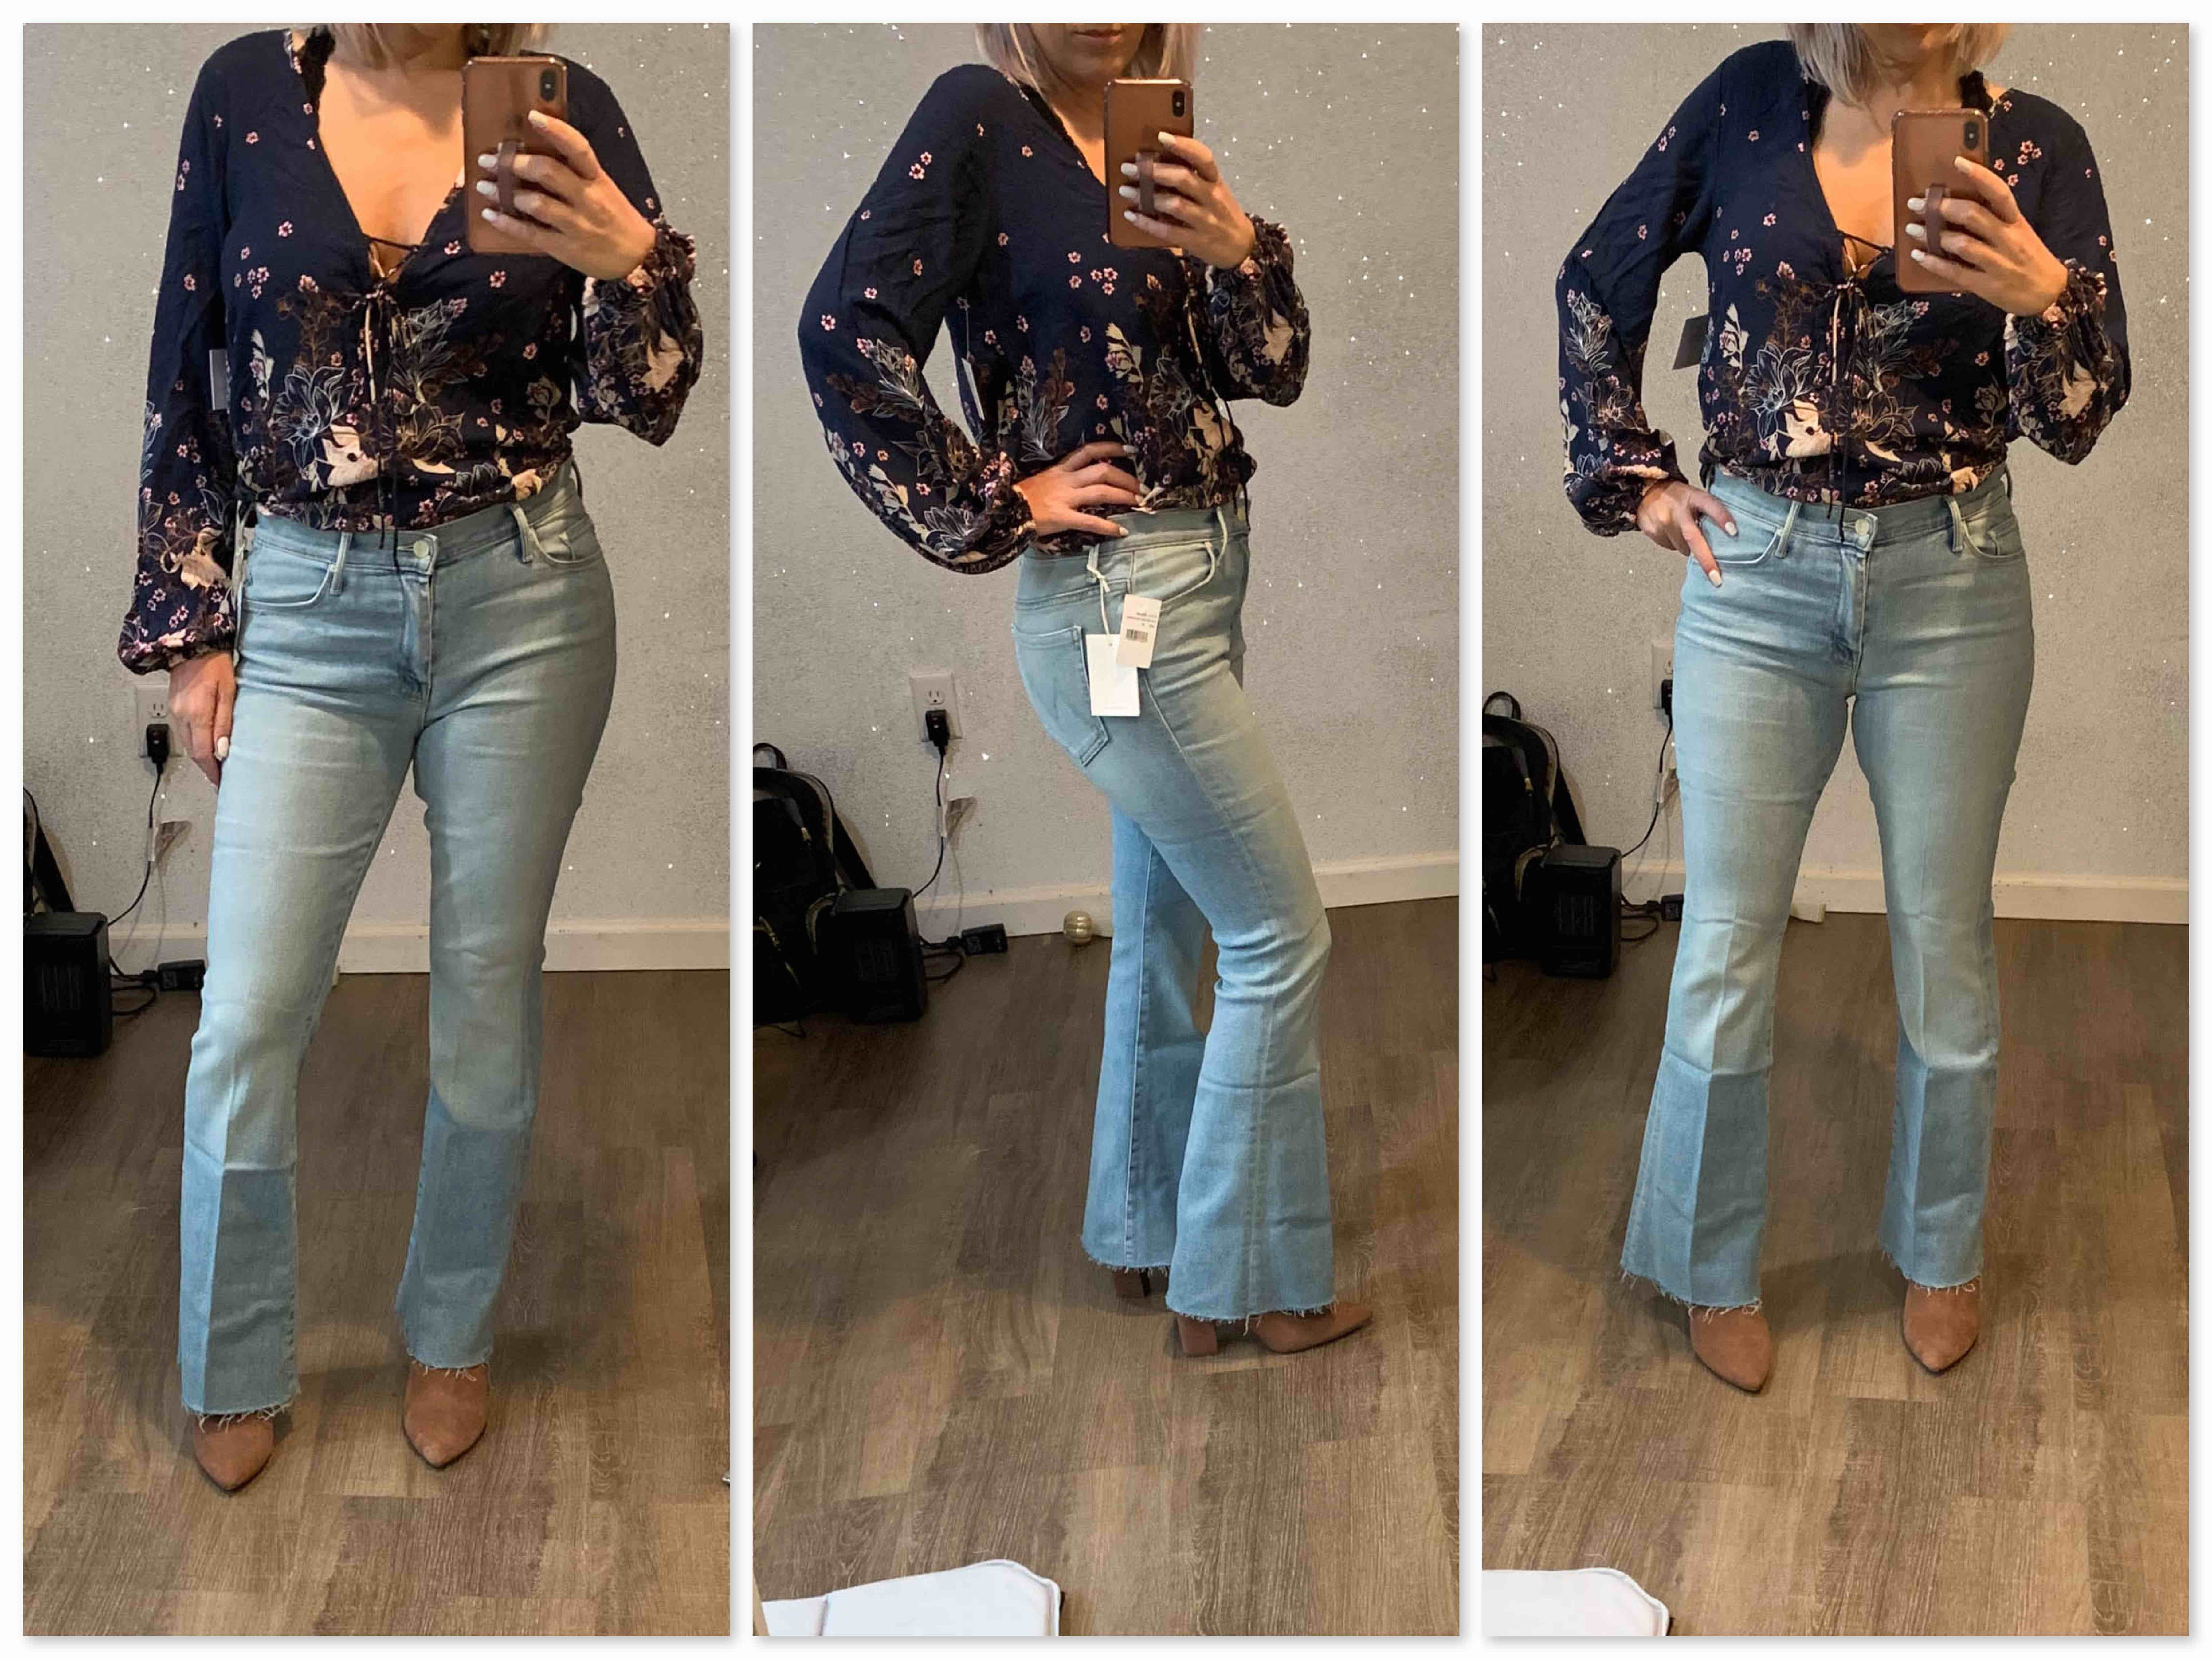 High-rise? Wide-leg? Flares? Mom Jeans? Boyfriend Jeans? The jeans trends are all over the place right now, but today, we're here for the flares. Come see.